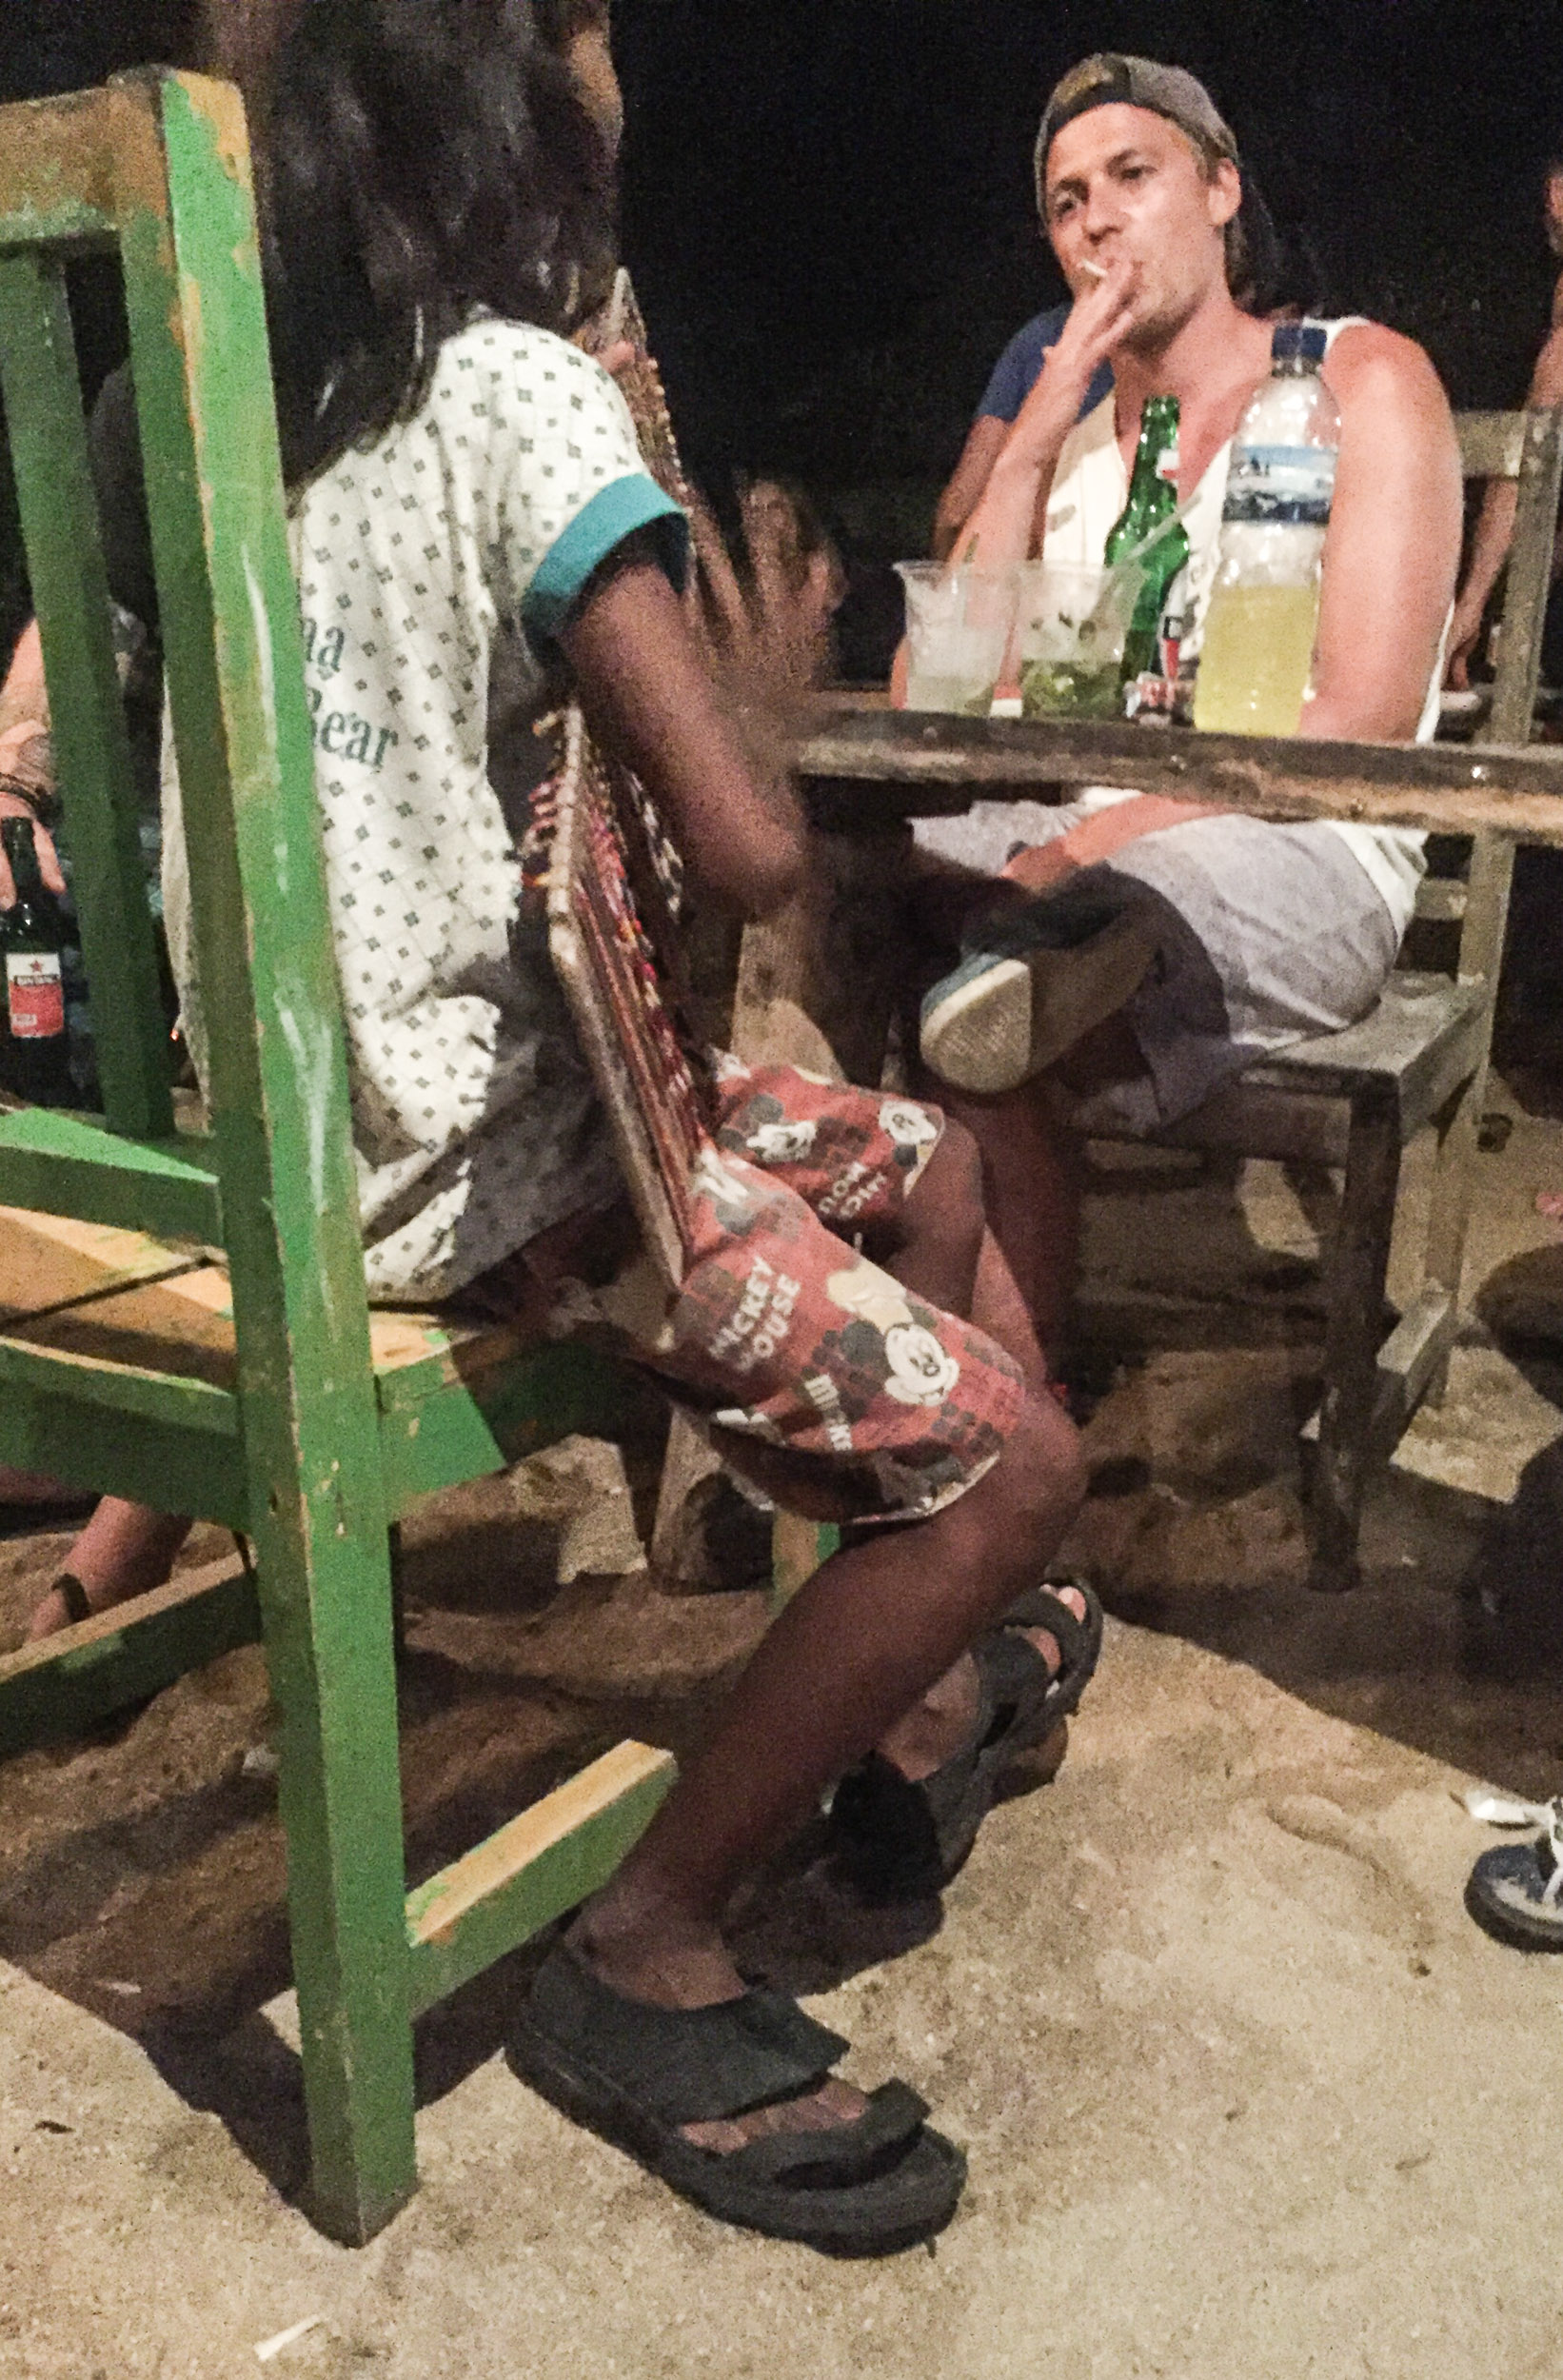 Check out her feet... Looks like a tough customer!